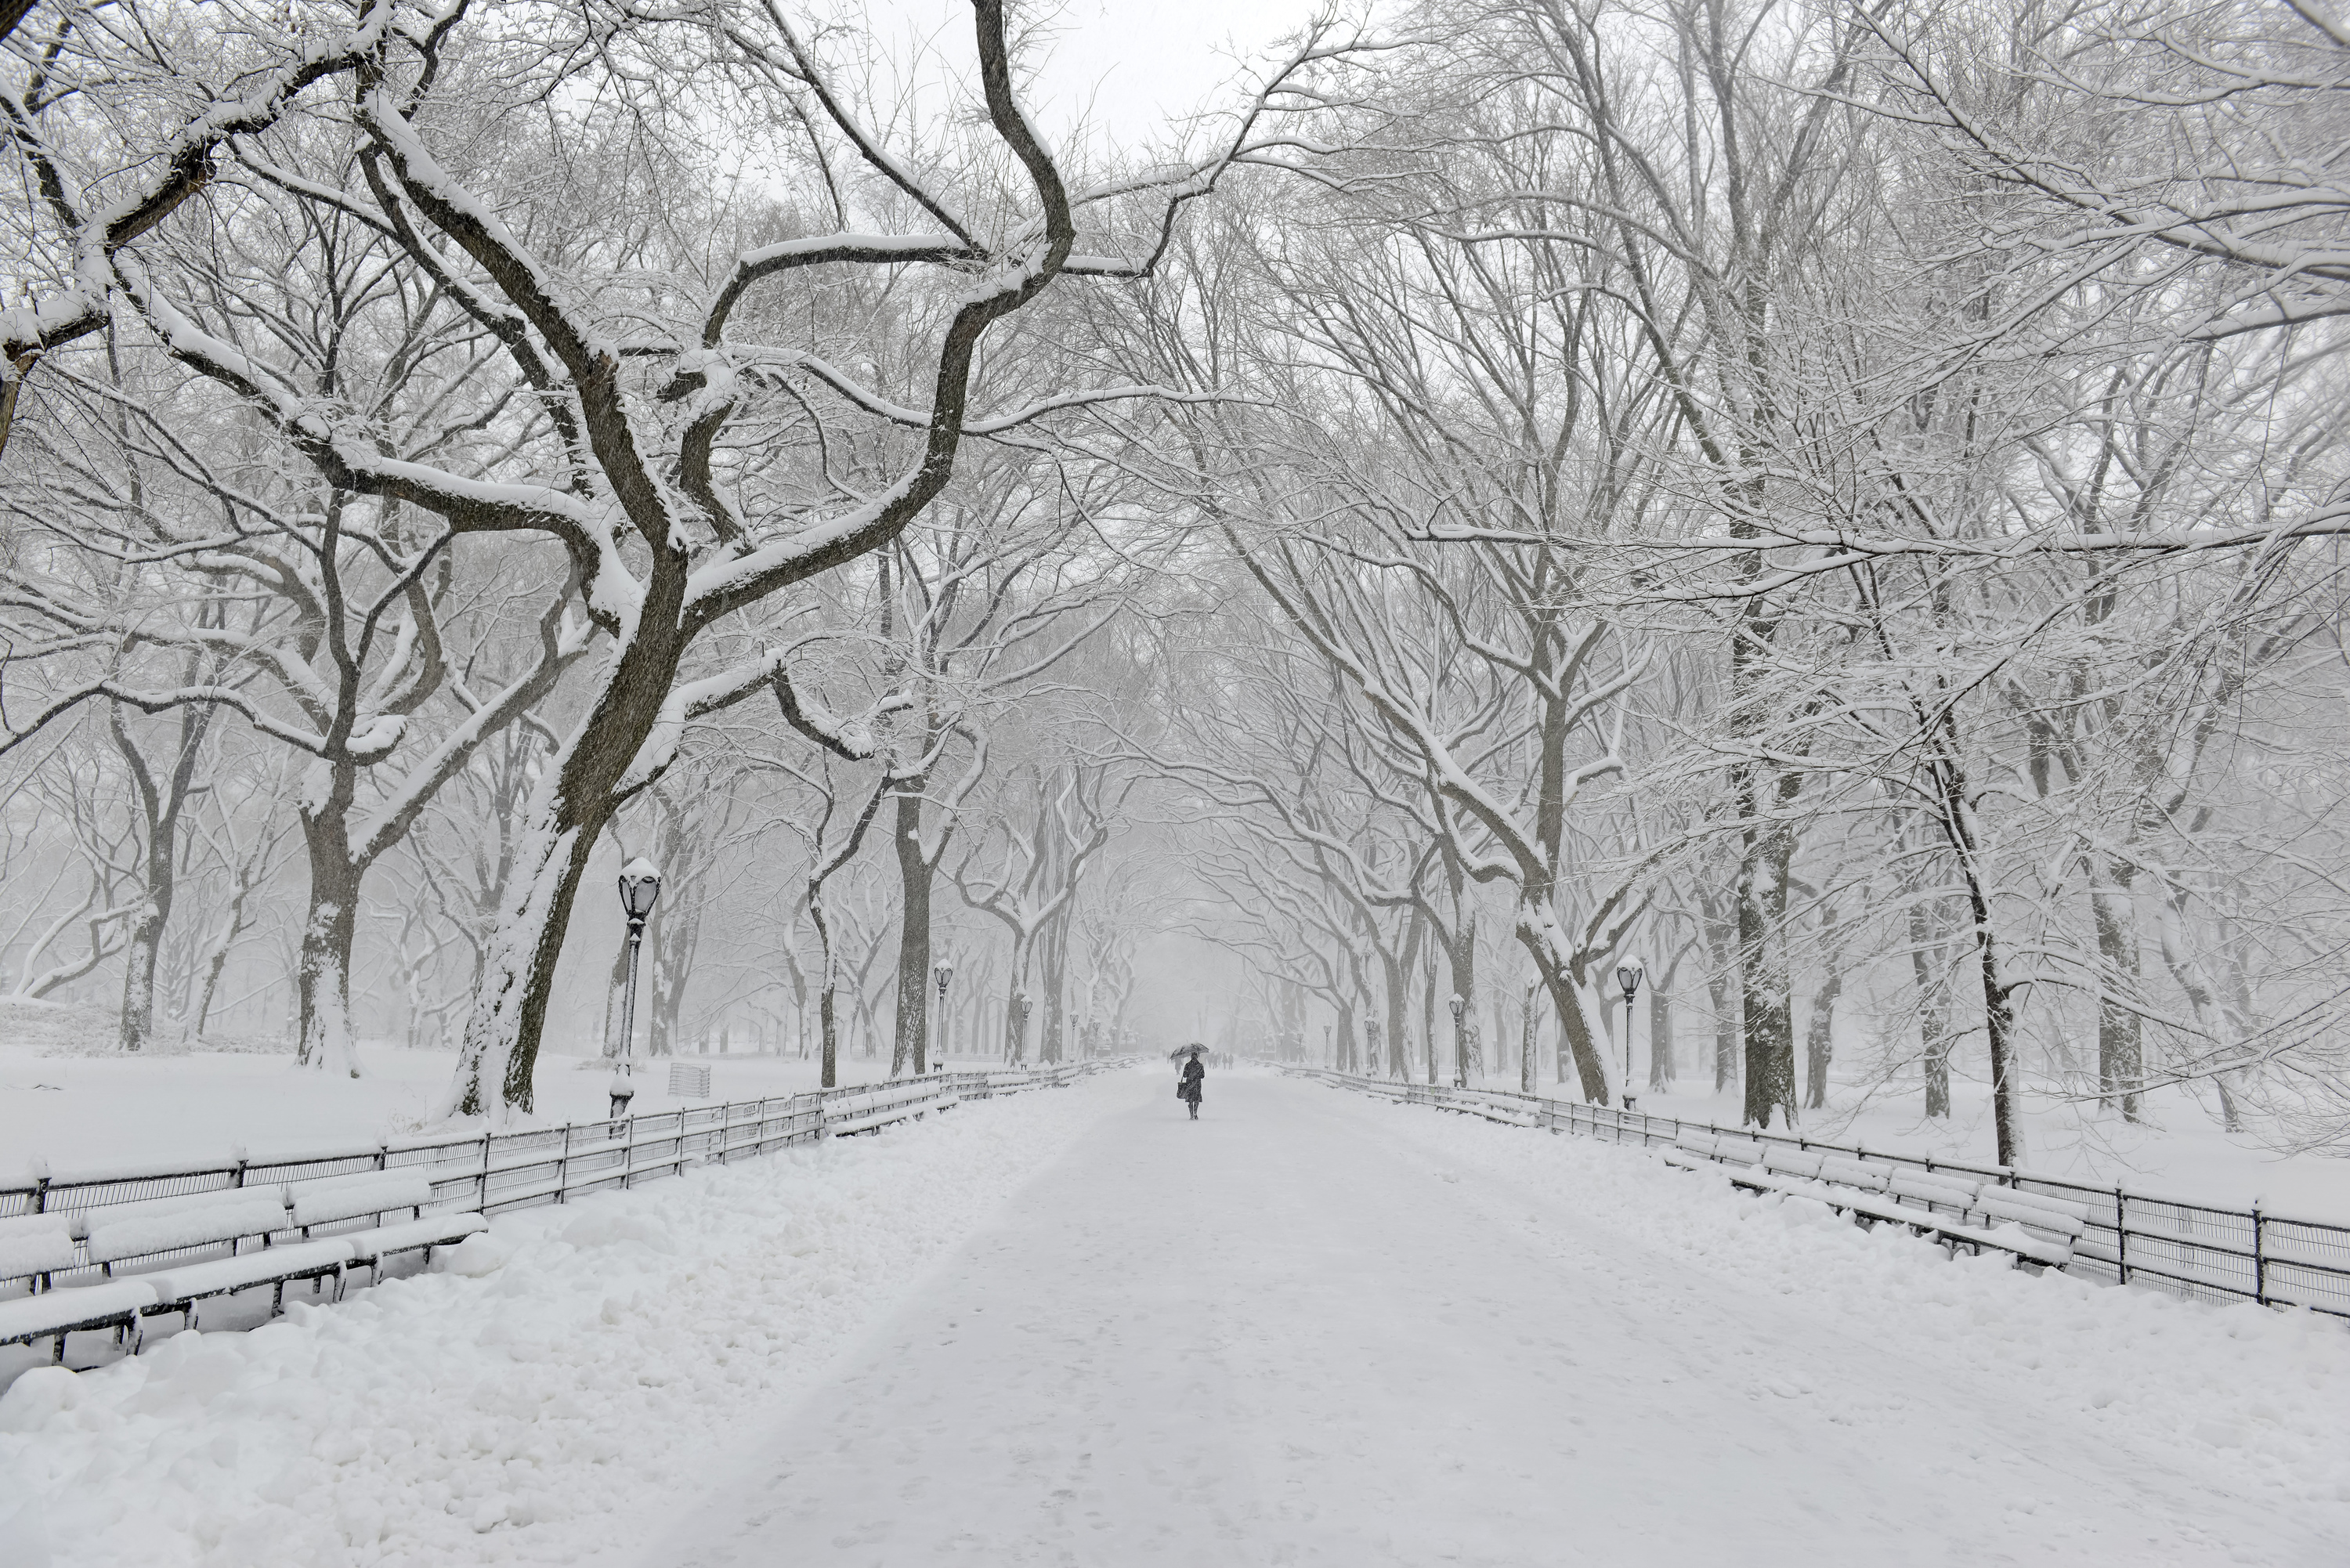 Cold outside, isn't it? Here's how to give to NYC's homeless